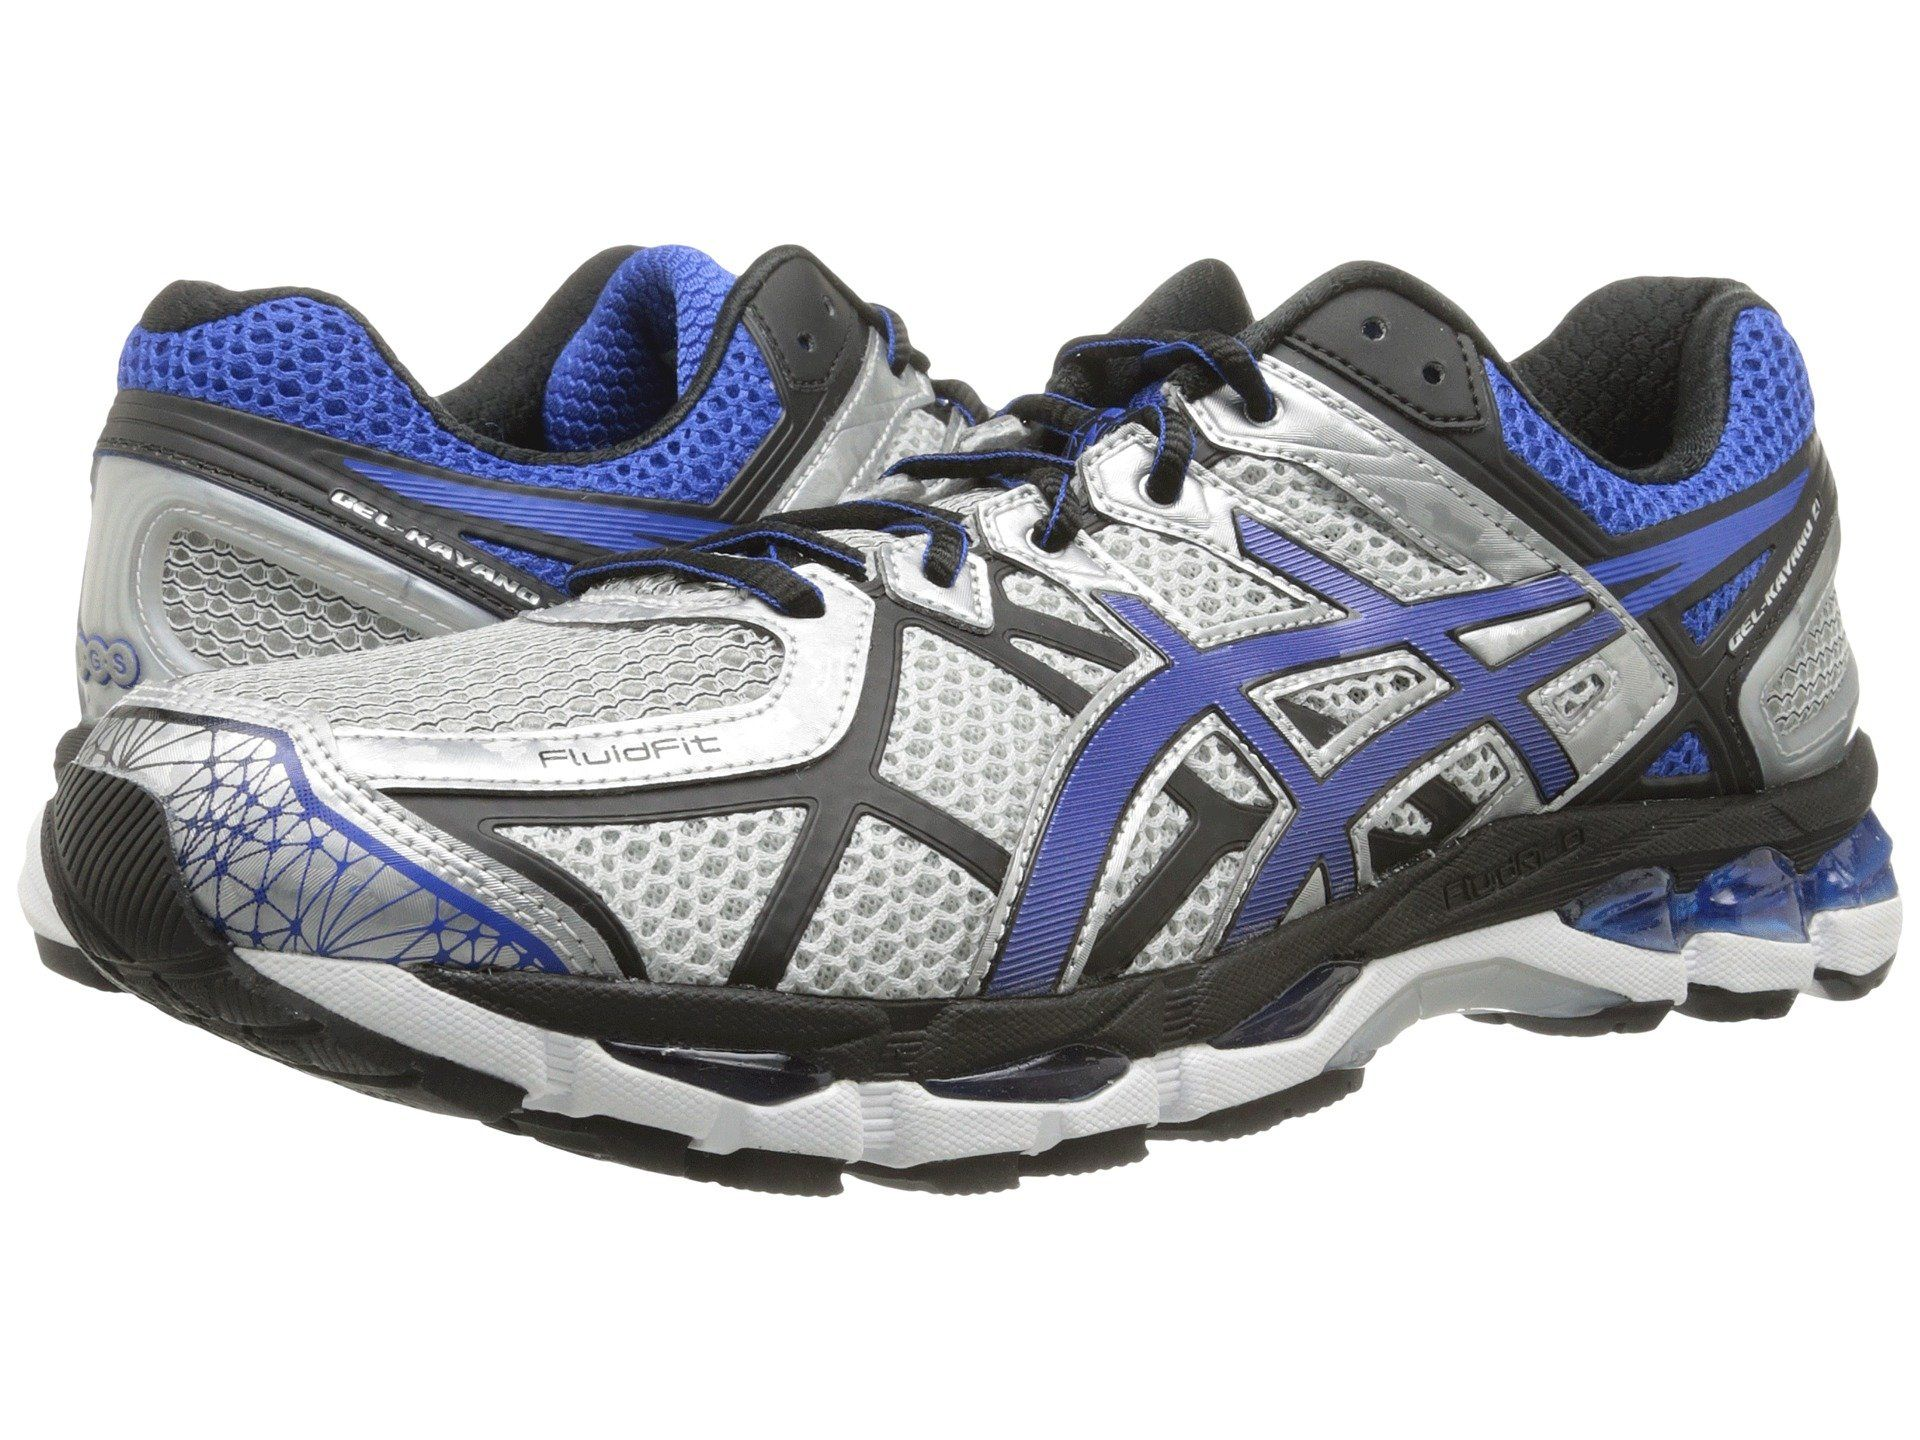 timeless design aa142 f6e61 ASICS Women s Gel kayano 21 Running Shoe  Color  Quick Silver White  Lightning